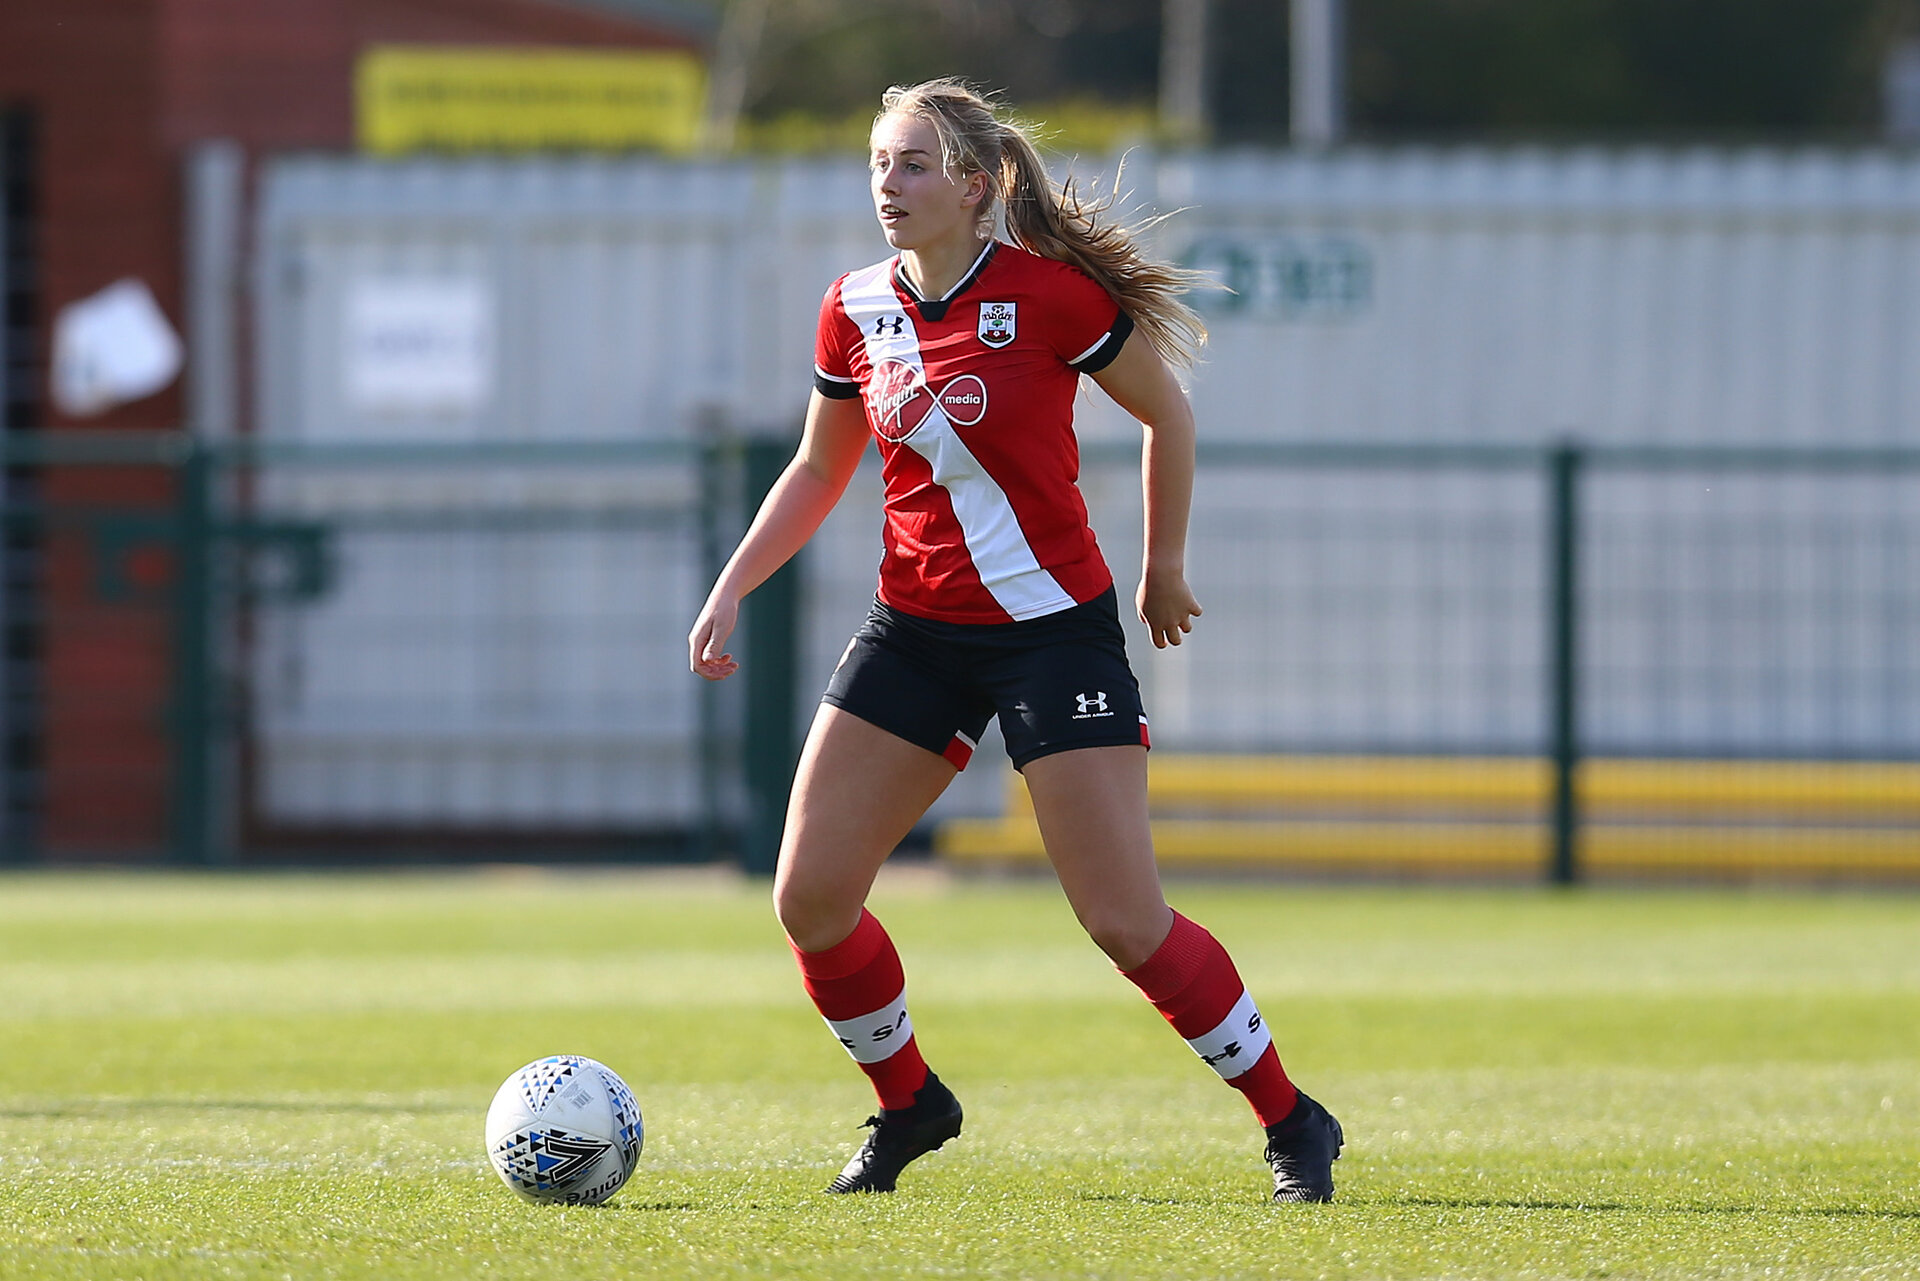 SOUTHAMPTON, ENGLAND - APRIL 04: Cattlin Morris of Southampton during the Vitality Women's FA Cup second round match between Southampton Women and Plymouth Argyle Women at The Snows Stadium on April 04, 2021 in Southampton, England. (Photo by Isabelle Field/Southampton FC via Getty Images)